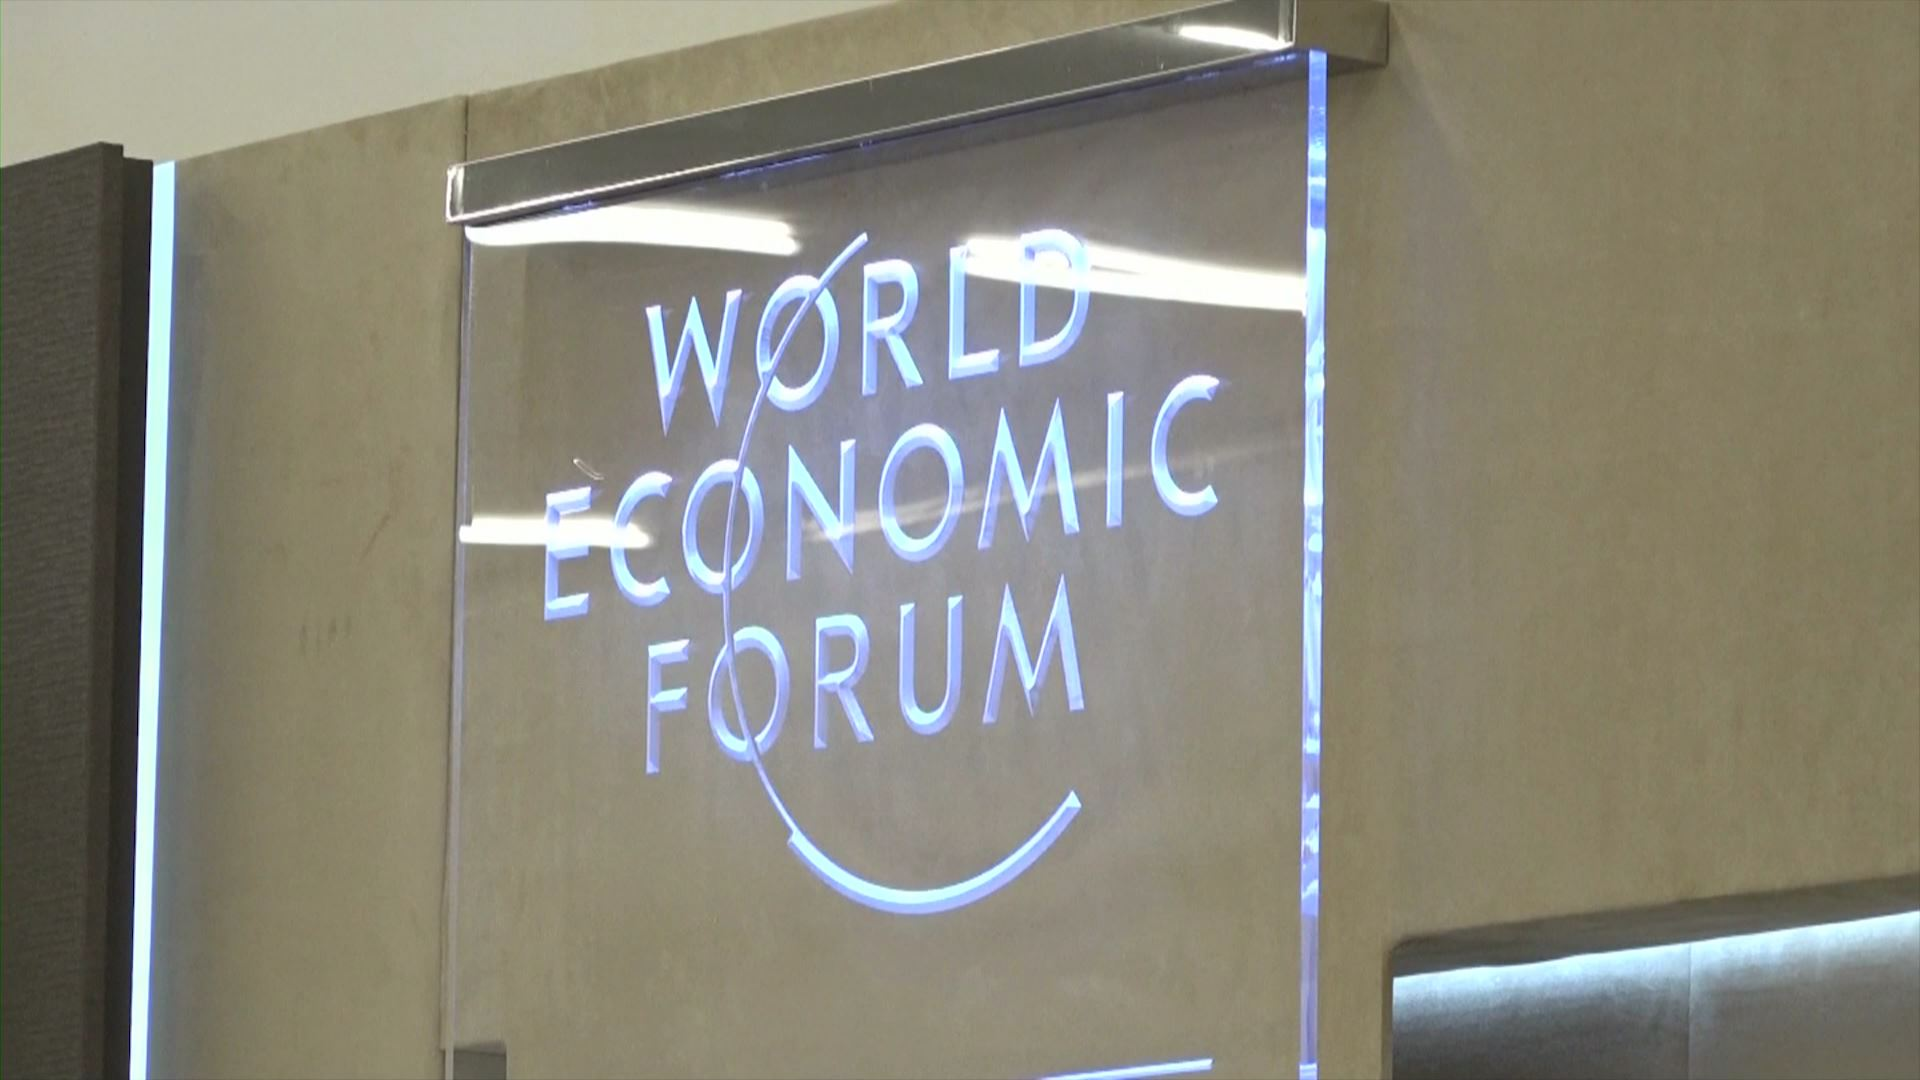 The Prime Minister will take part in Davos World Economic Forum